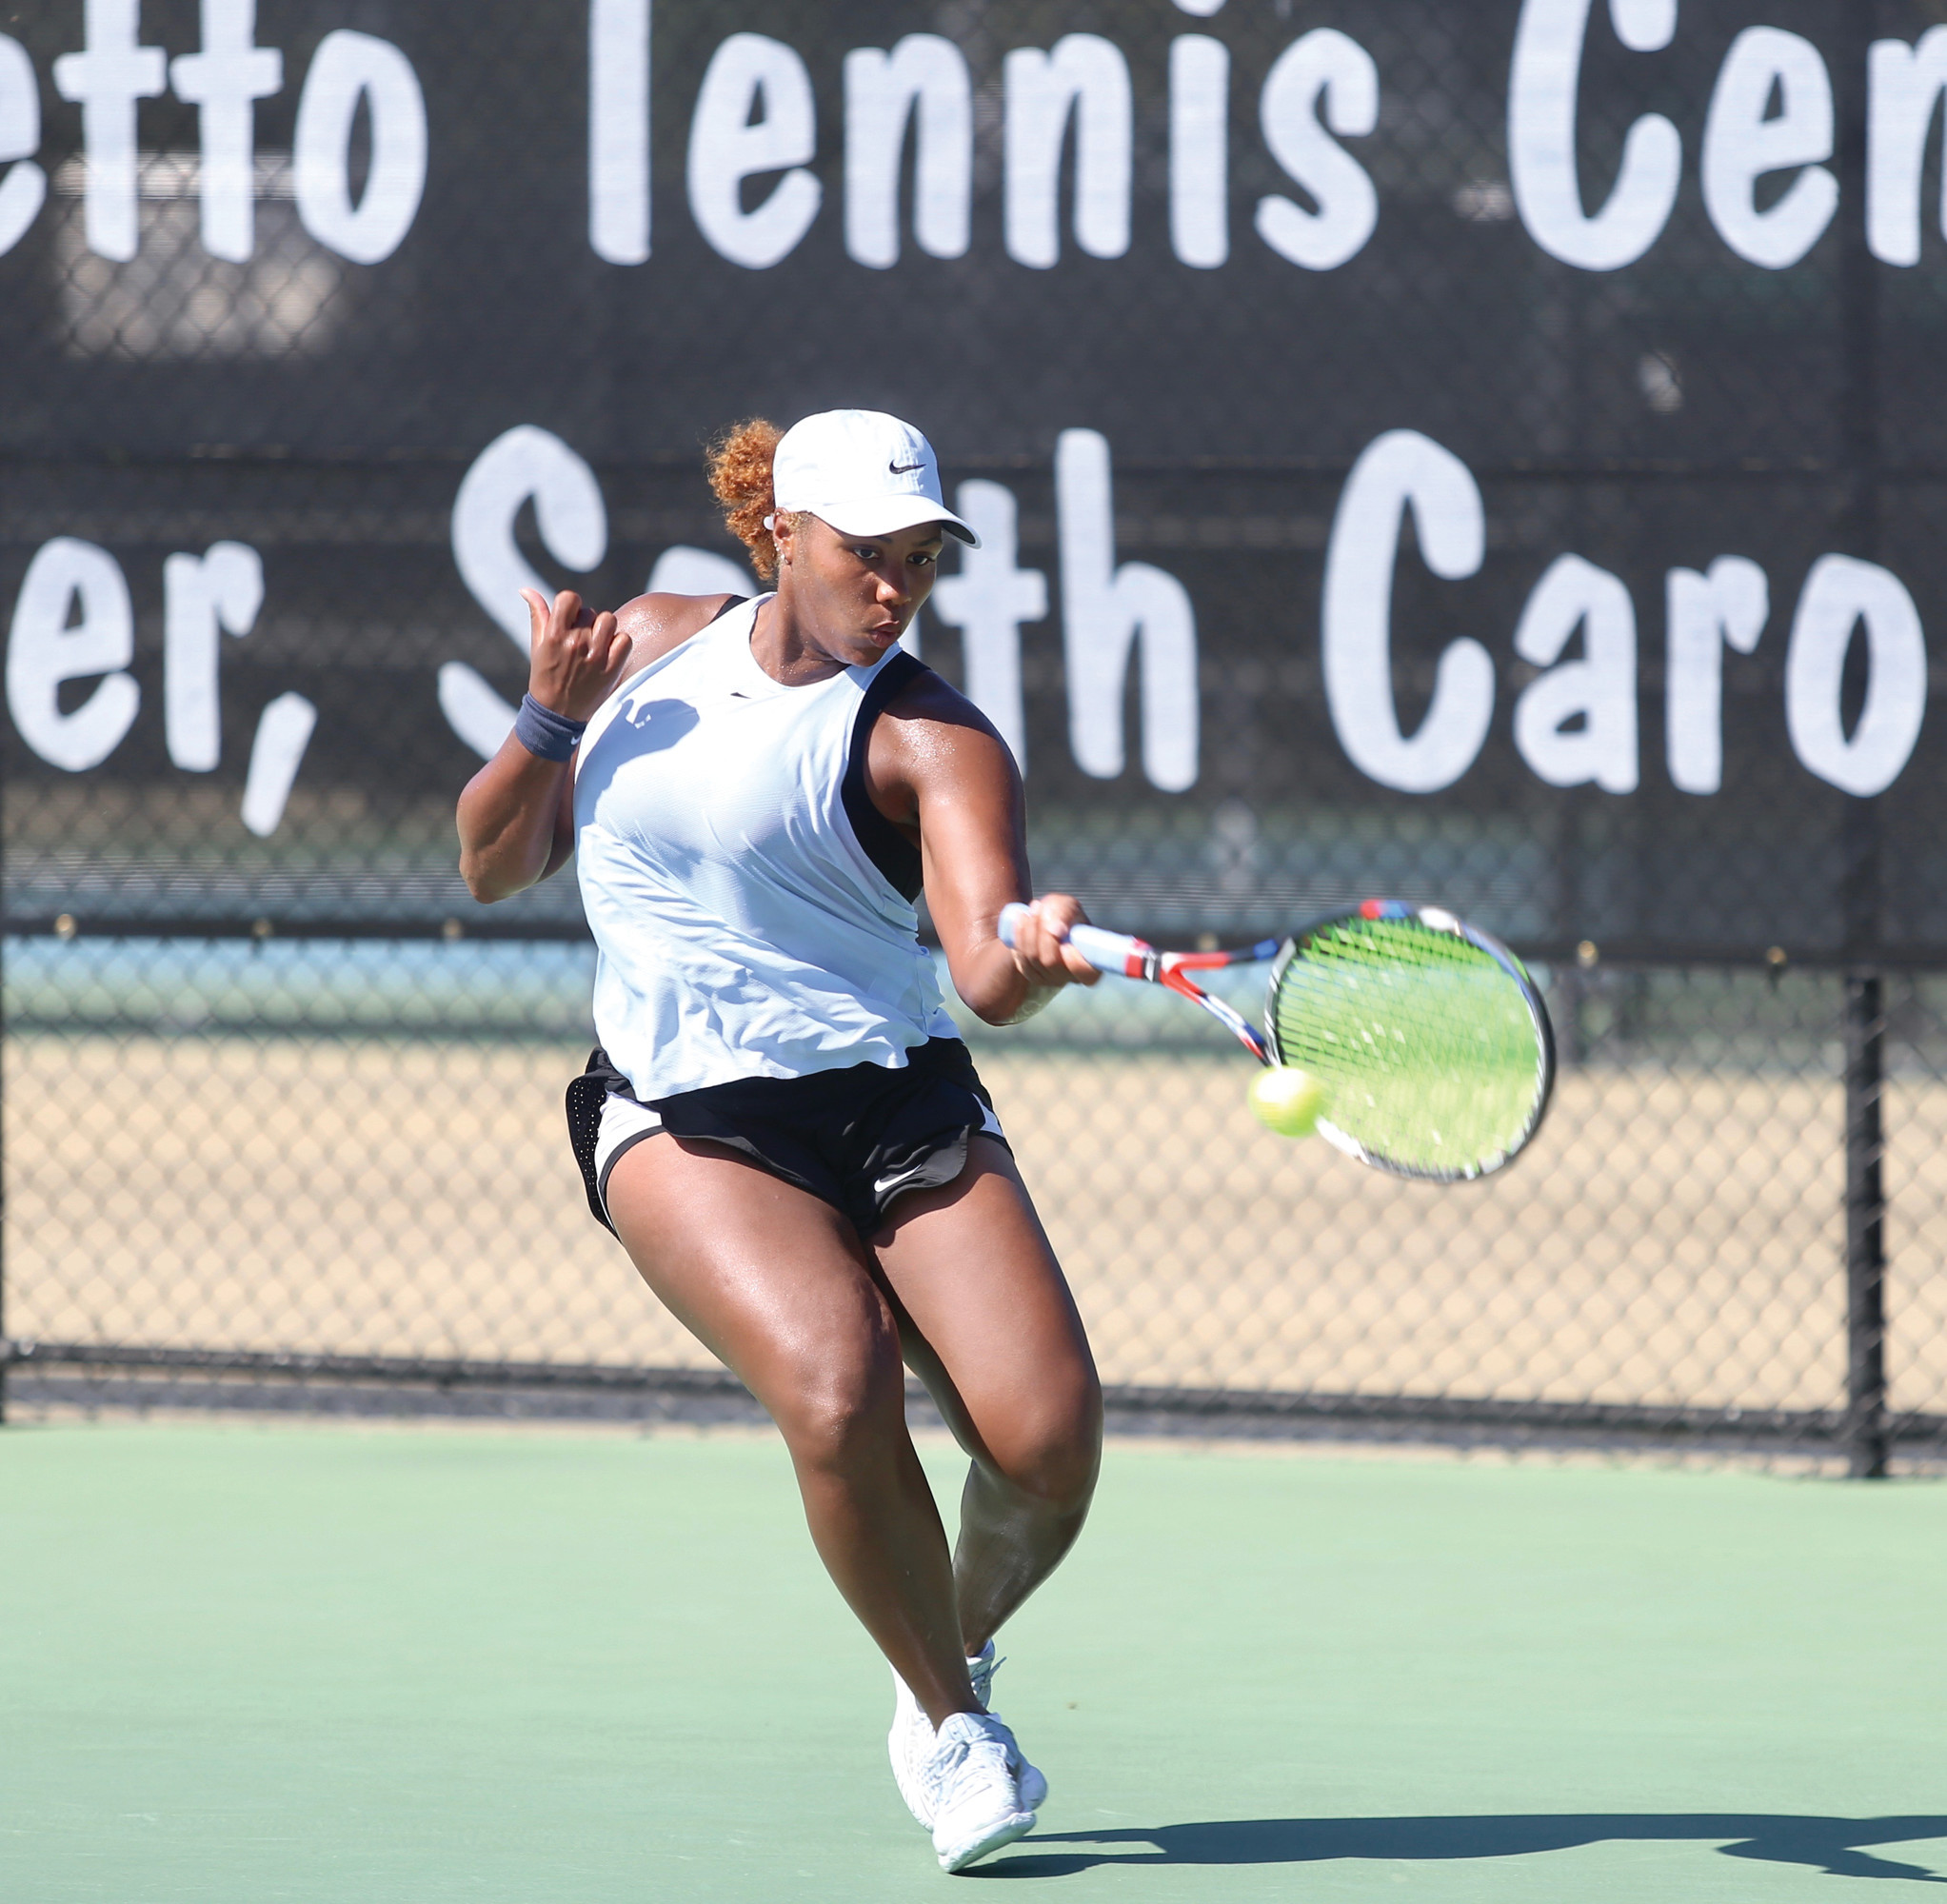 TREVOR BAUKNIGHT /   THE SUMTER ITEMTaylor Townsend returns a  shot during her 6-2,  6-1 victory over  Ulrikke Eikeri in the  singles championship  match of the Sumter  Pink Open on Sunday  at Palmetto Tennis  Center. Townsend  was also a part of the  winning doubles  team.